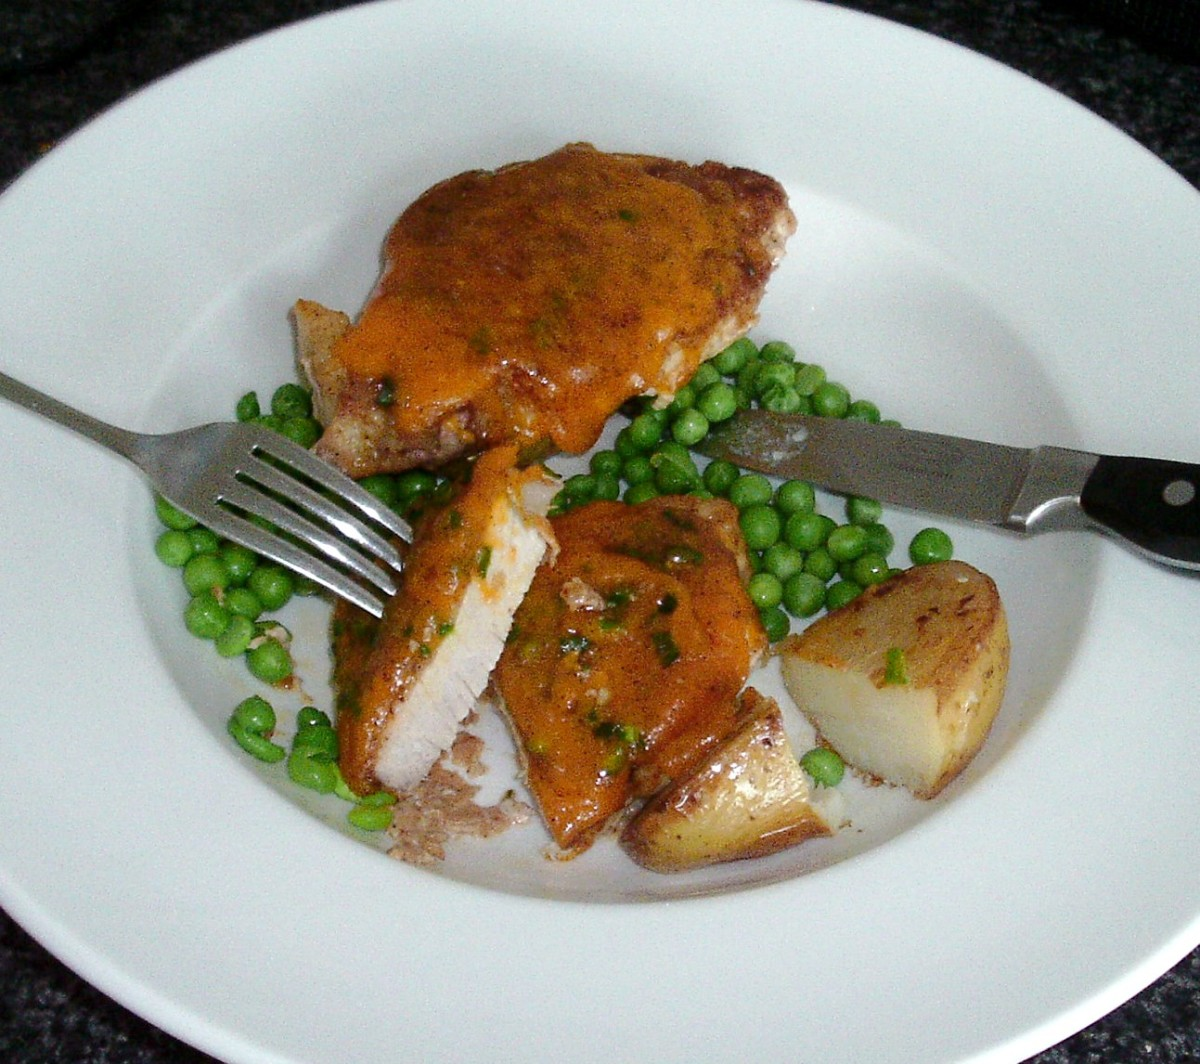 Spicy cheese crusted pork steaks served on curried fried potato with peas